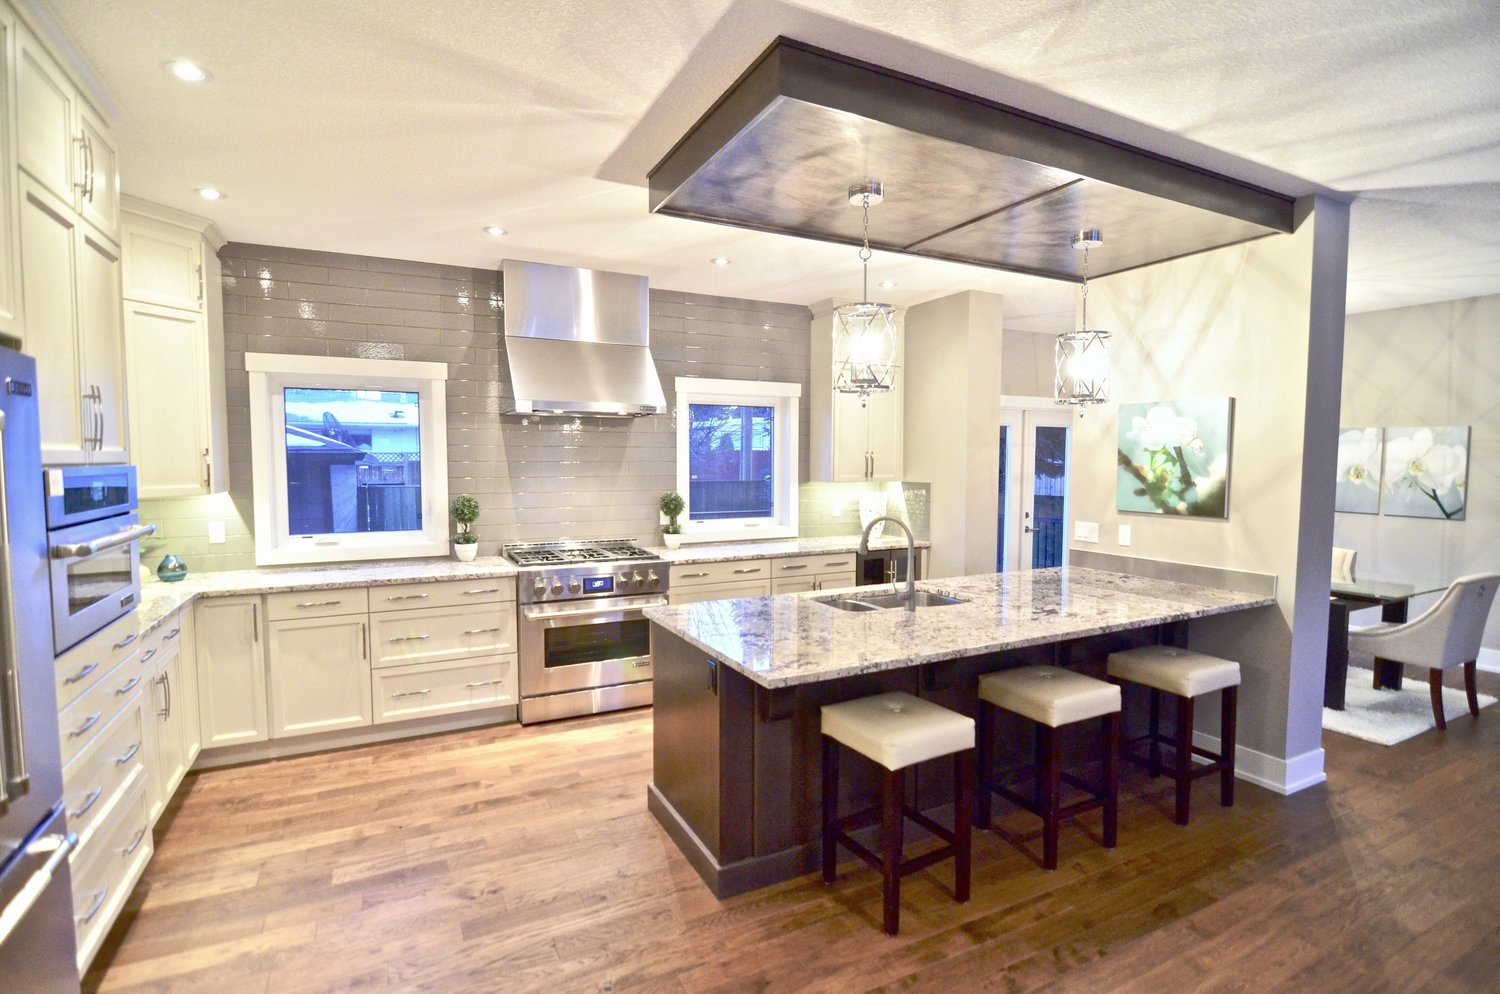 Essential Components Of A Successful Kitchen Renovation